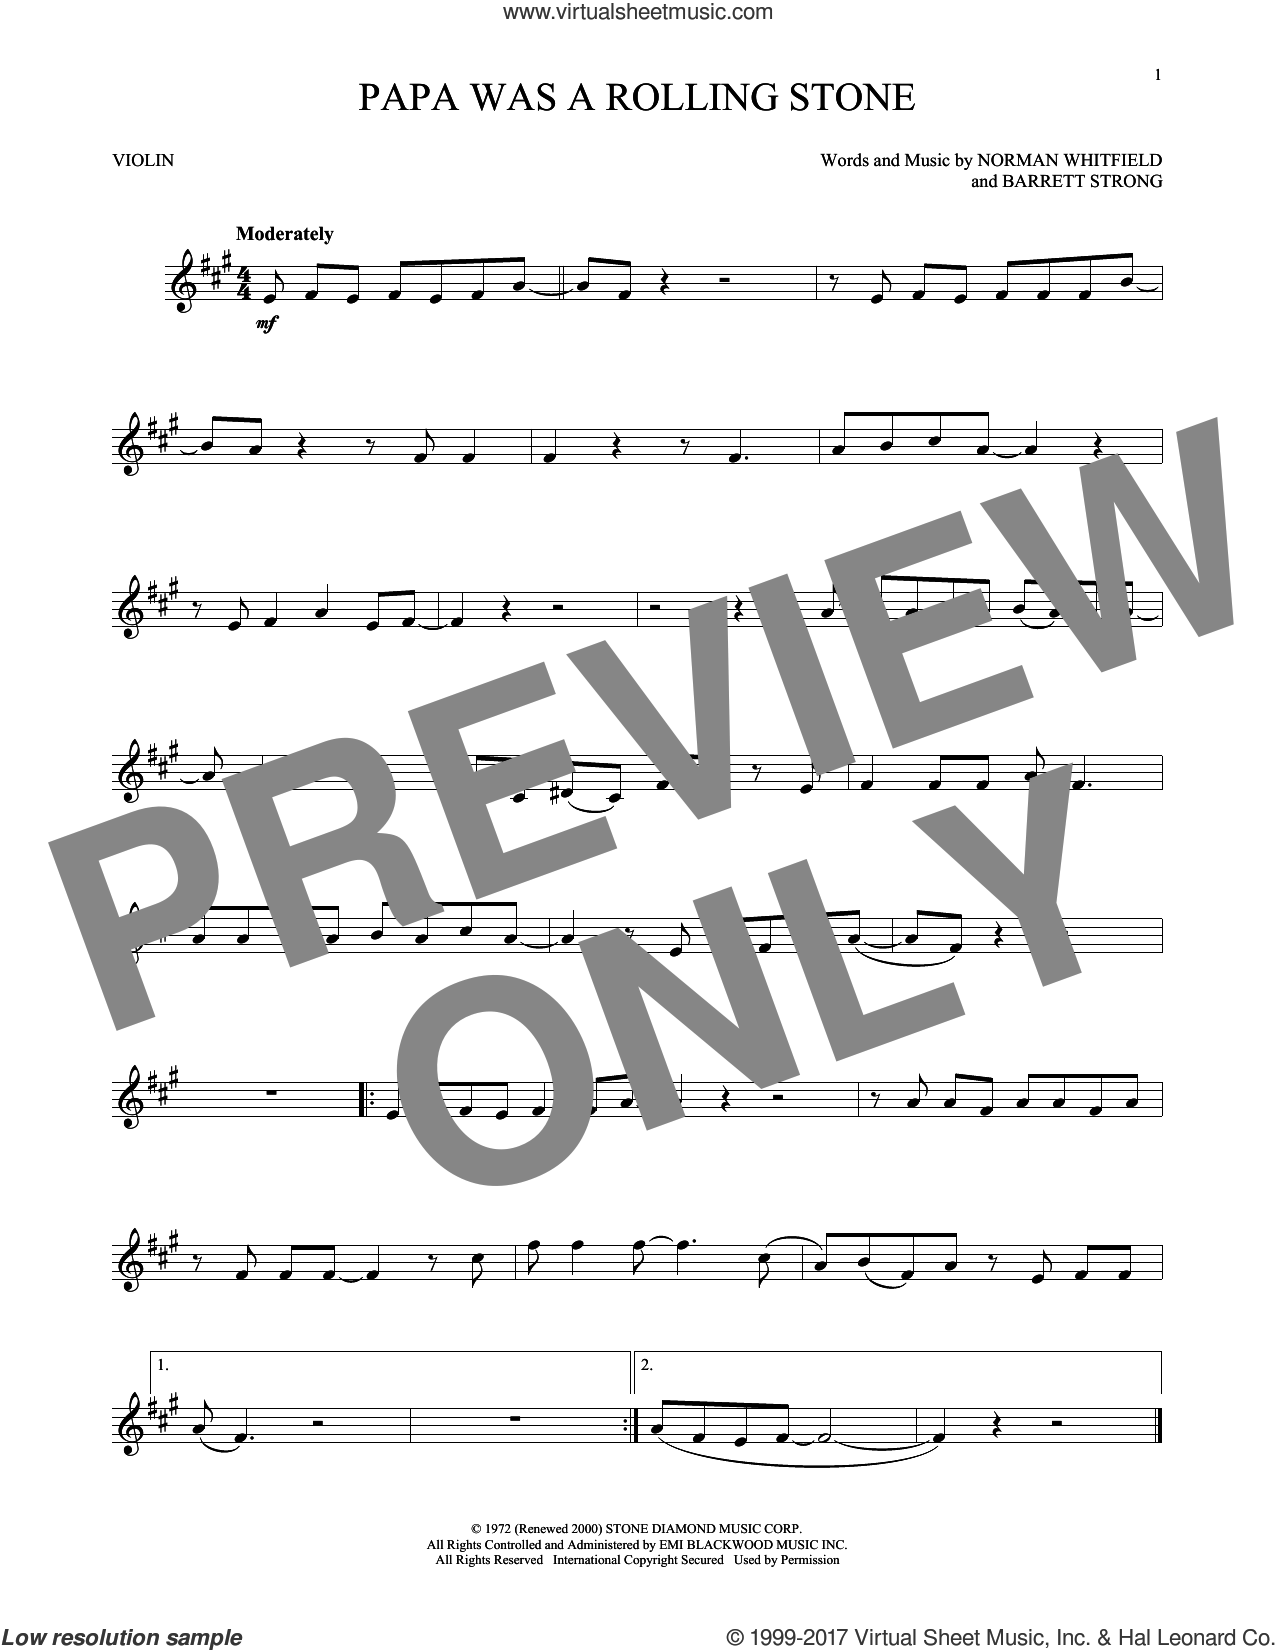 Papa Was A Rollin' Stone sheet music for violin solo by The Temptations, Barrett Strong and Norman Whitfield, intermediate skill level